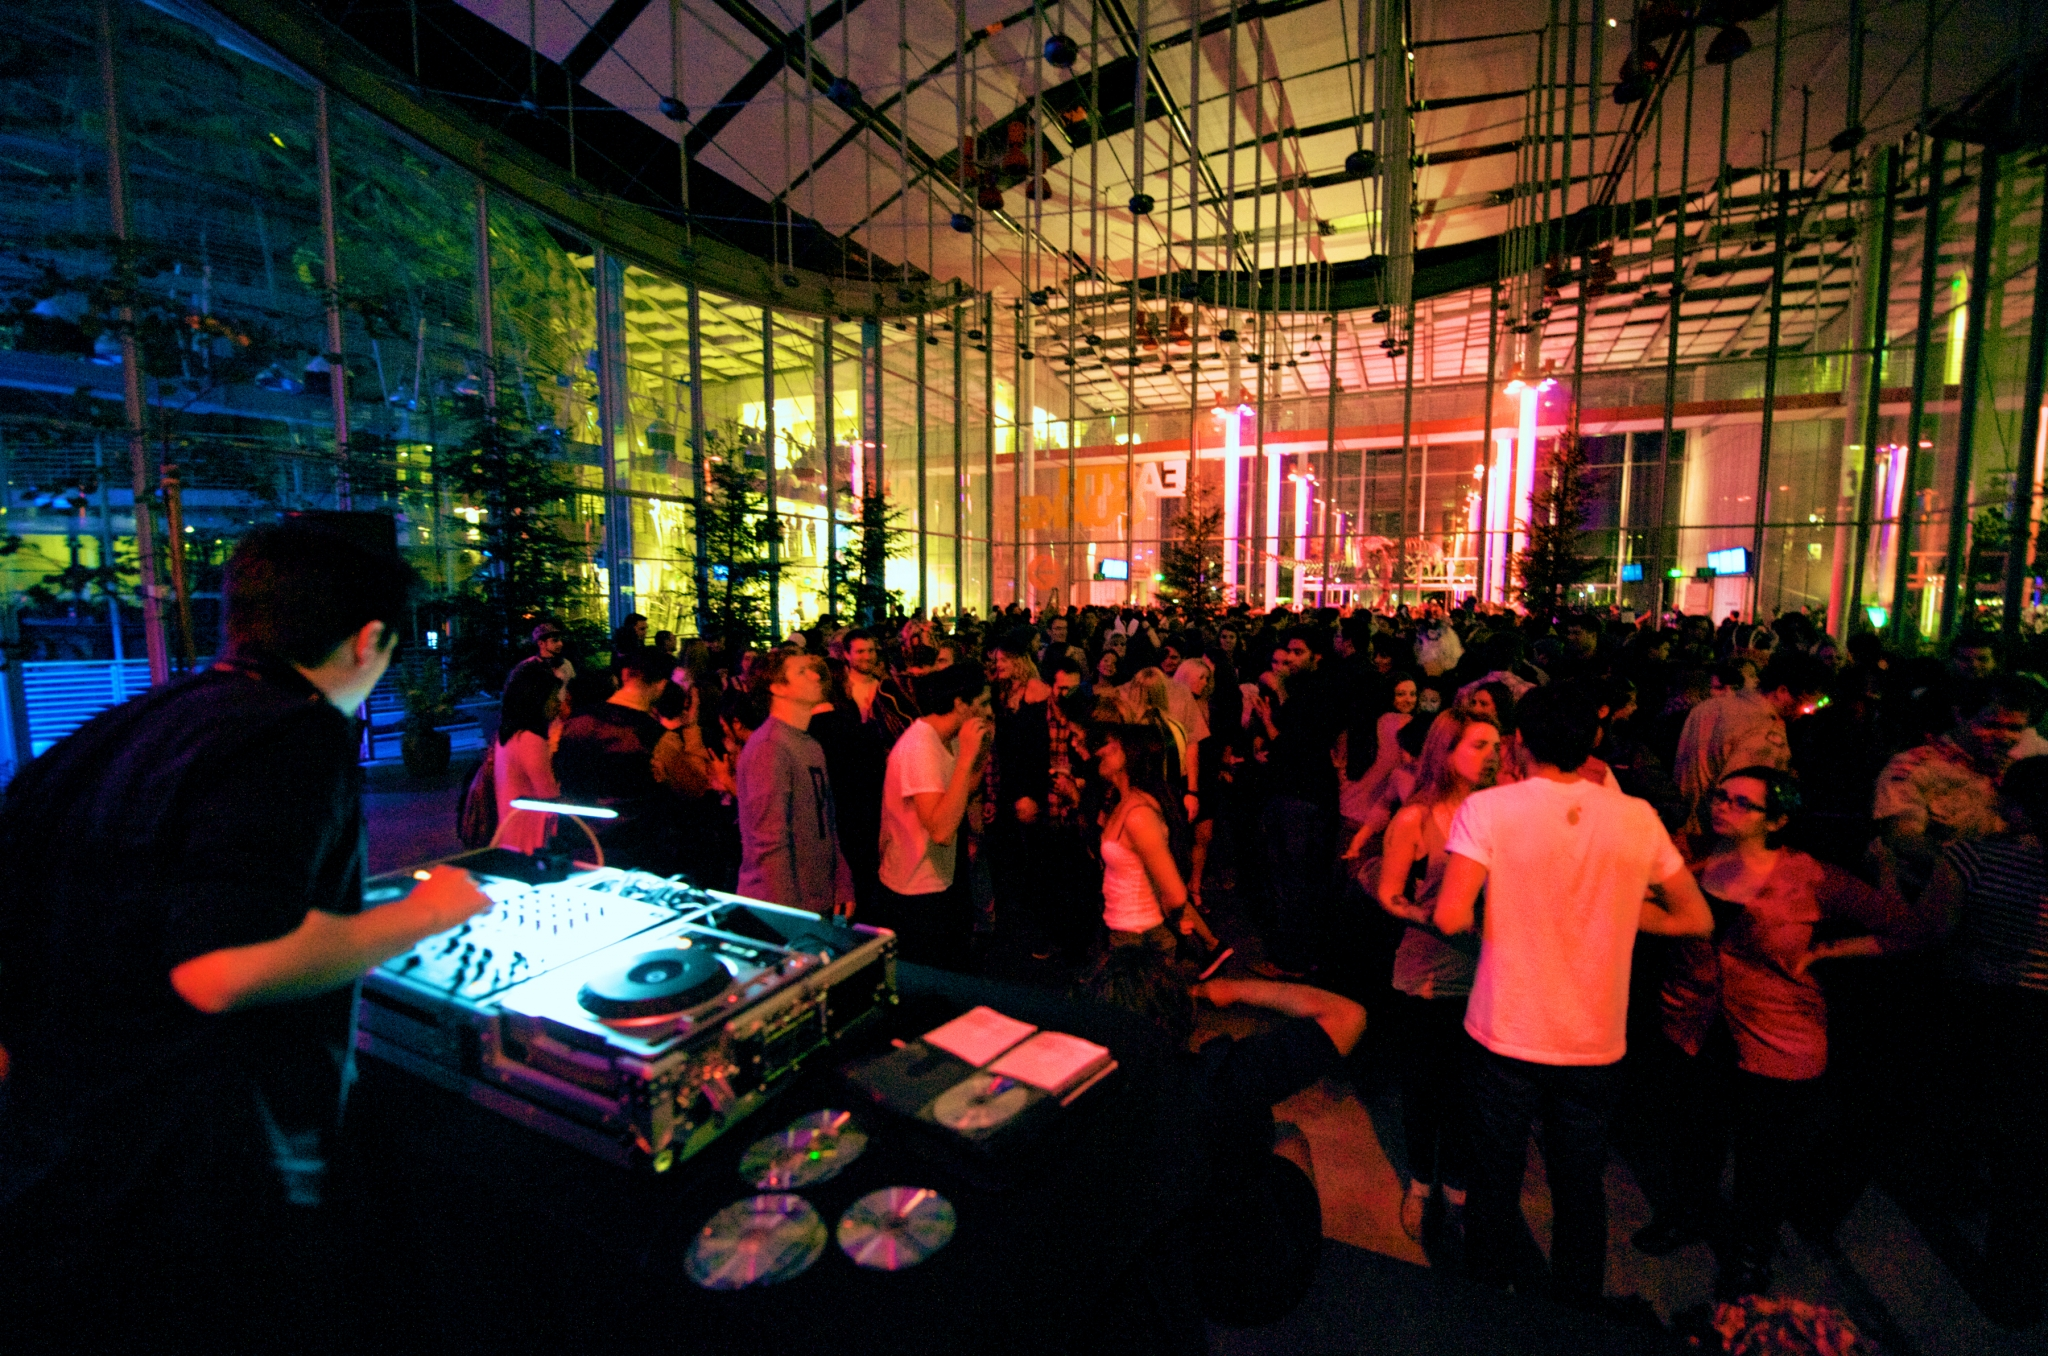 Cal Academy of Sciences Nightlife event goes virtual